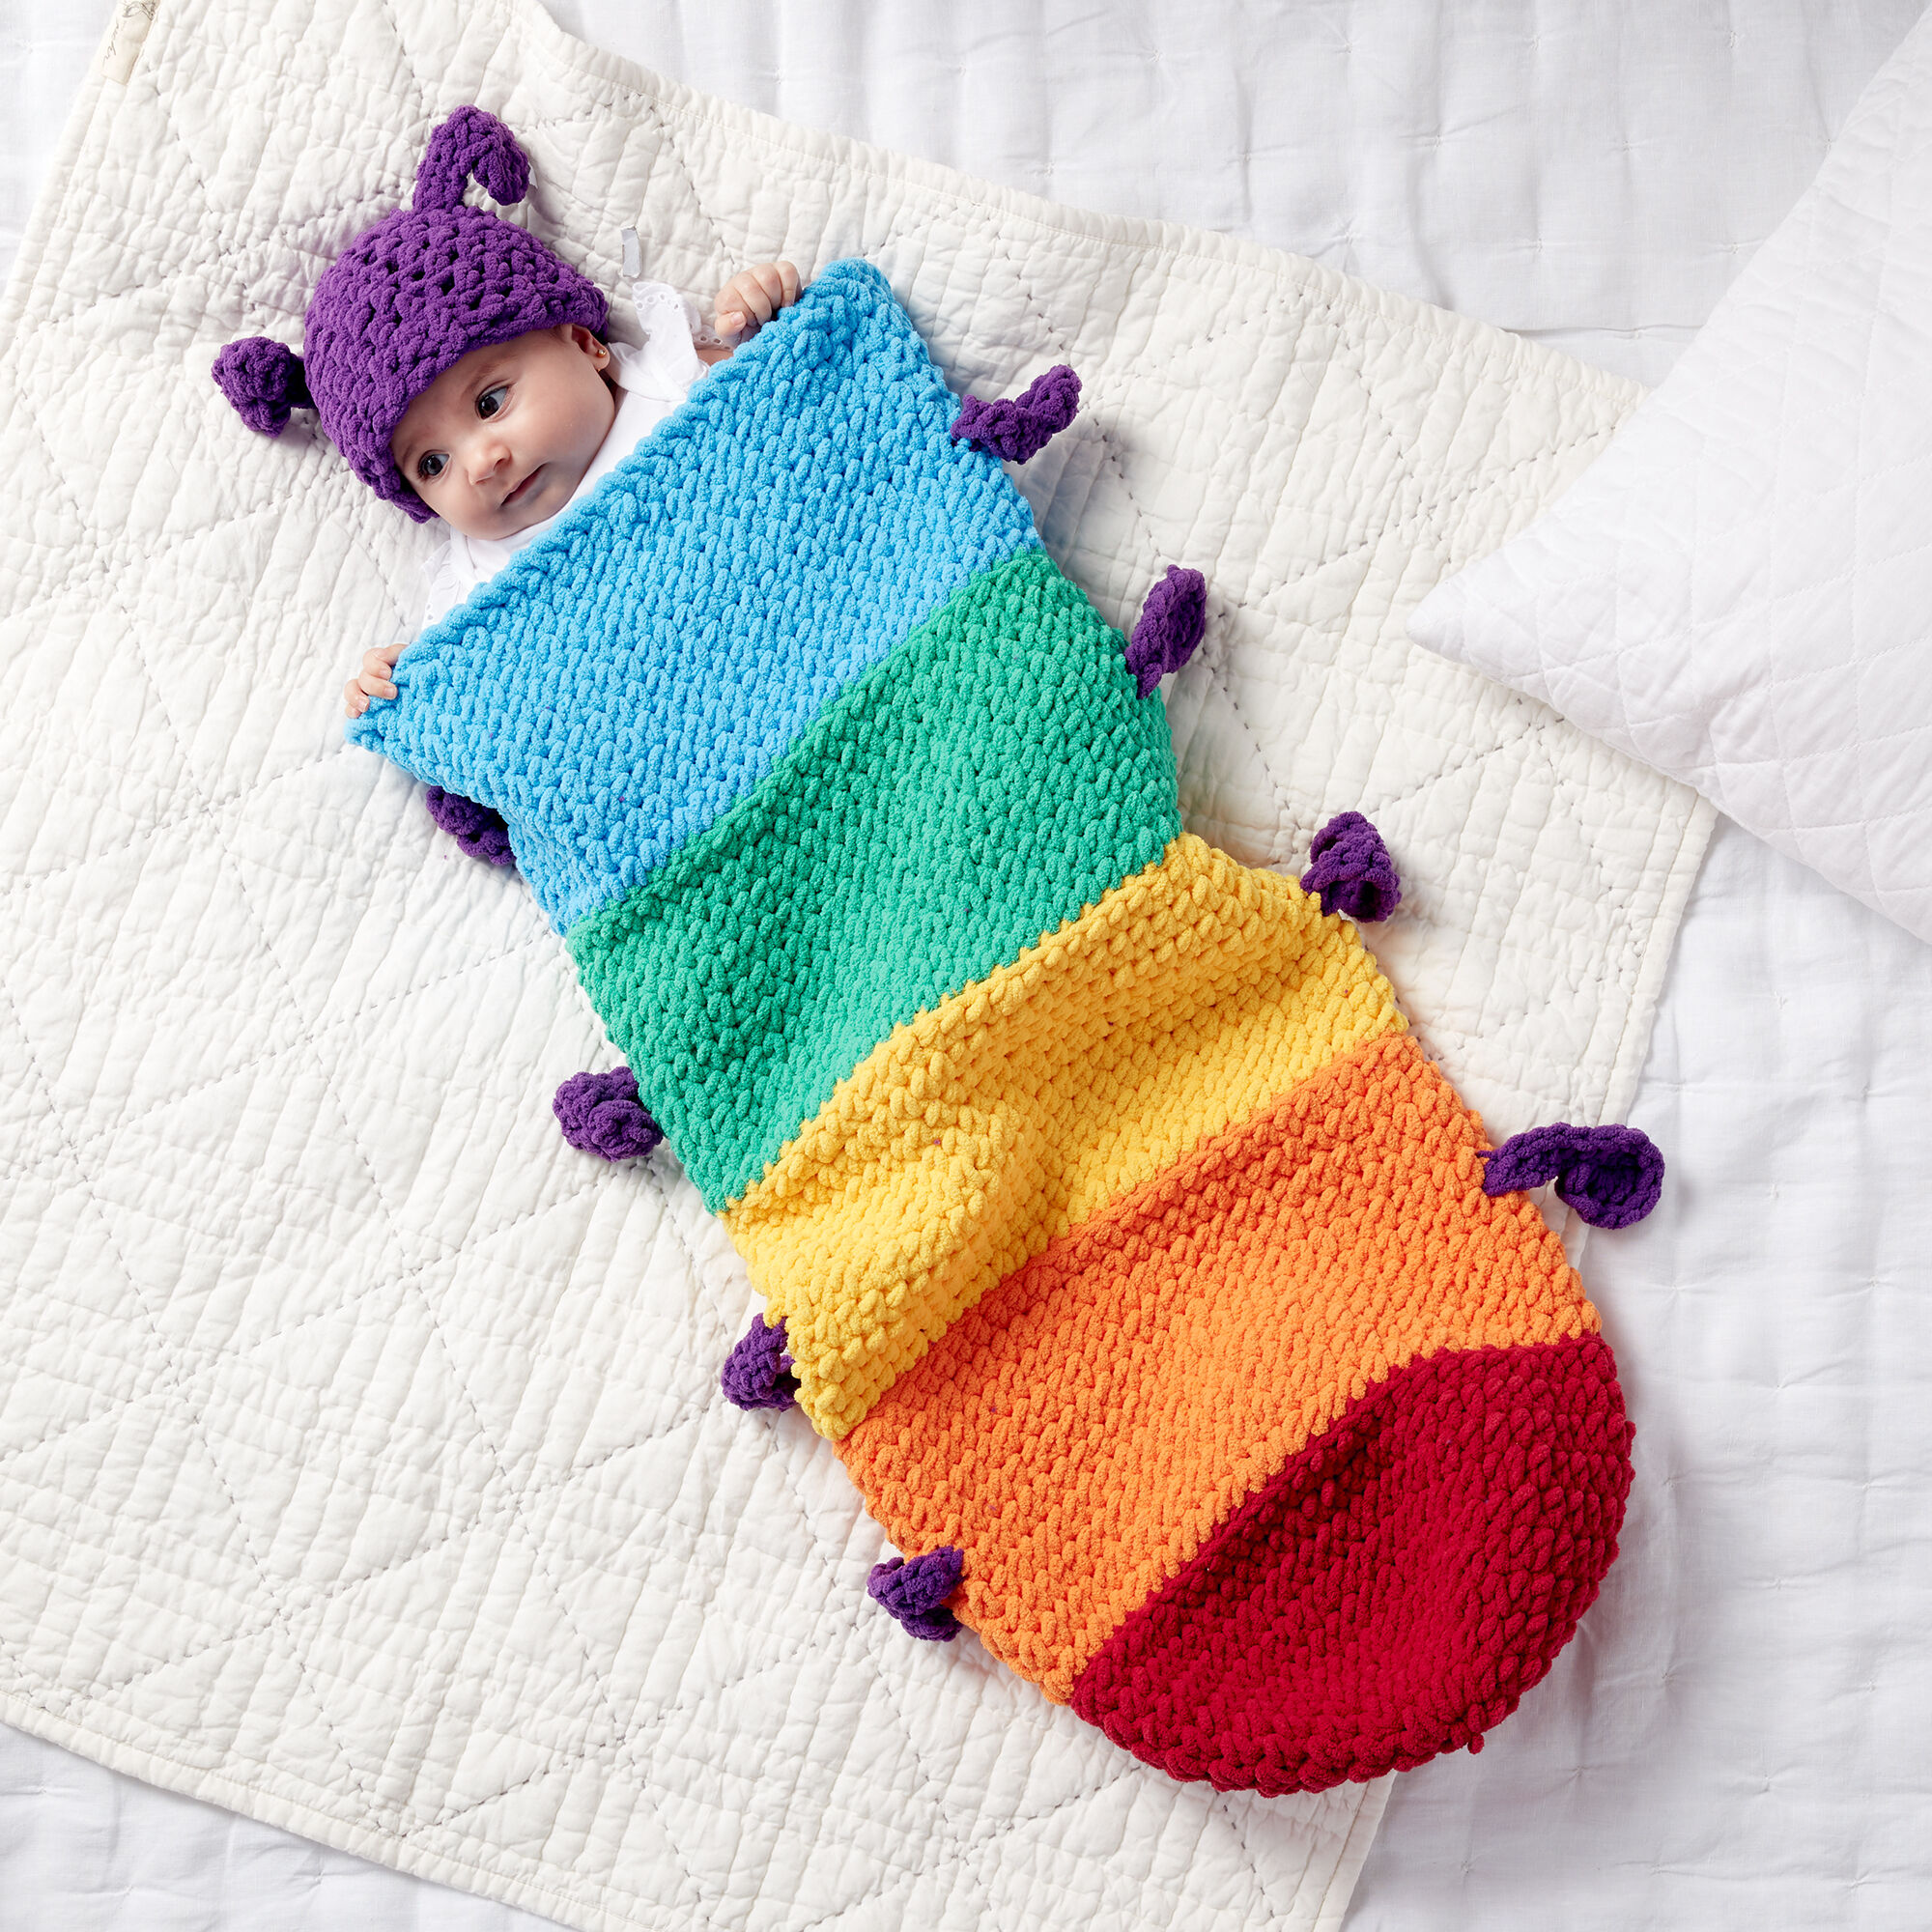 Crochet A Rainbow Caterpillar Snuggle Sleepsack Makes An